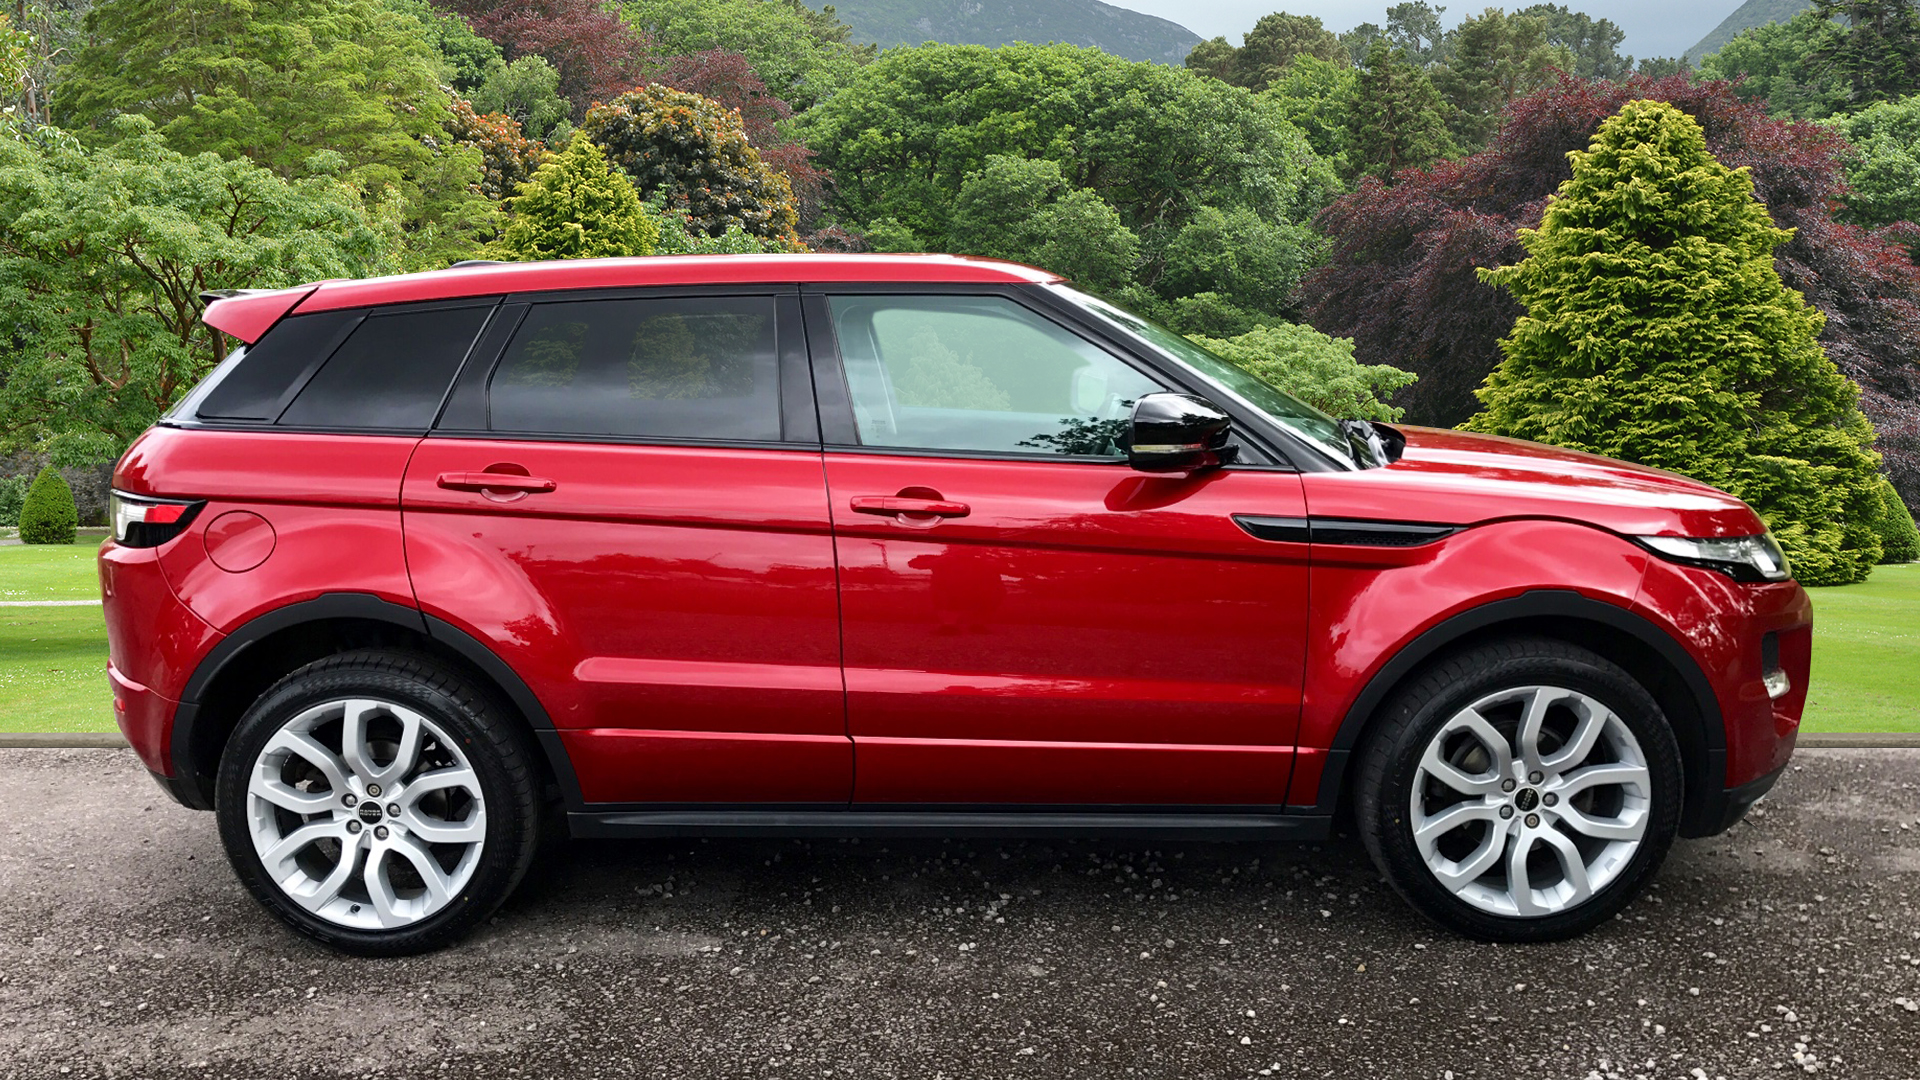 Used Land Rover Range Rover Evoque Dynamic SD4 Red LS12VKK